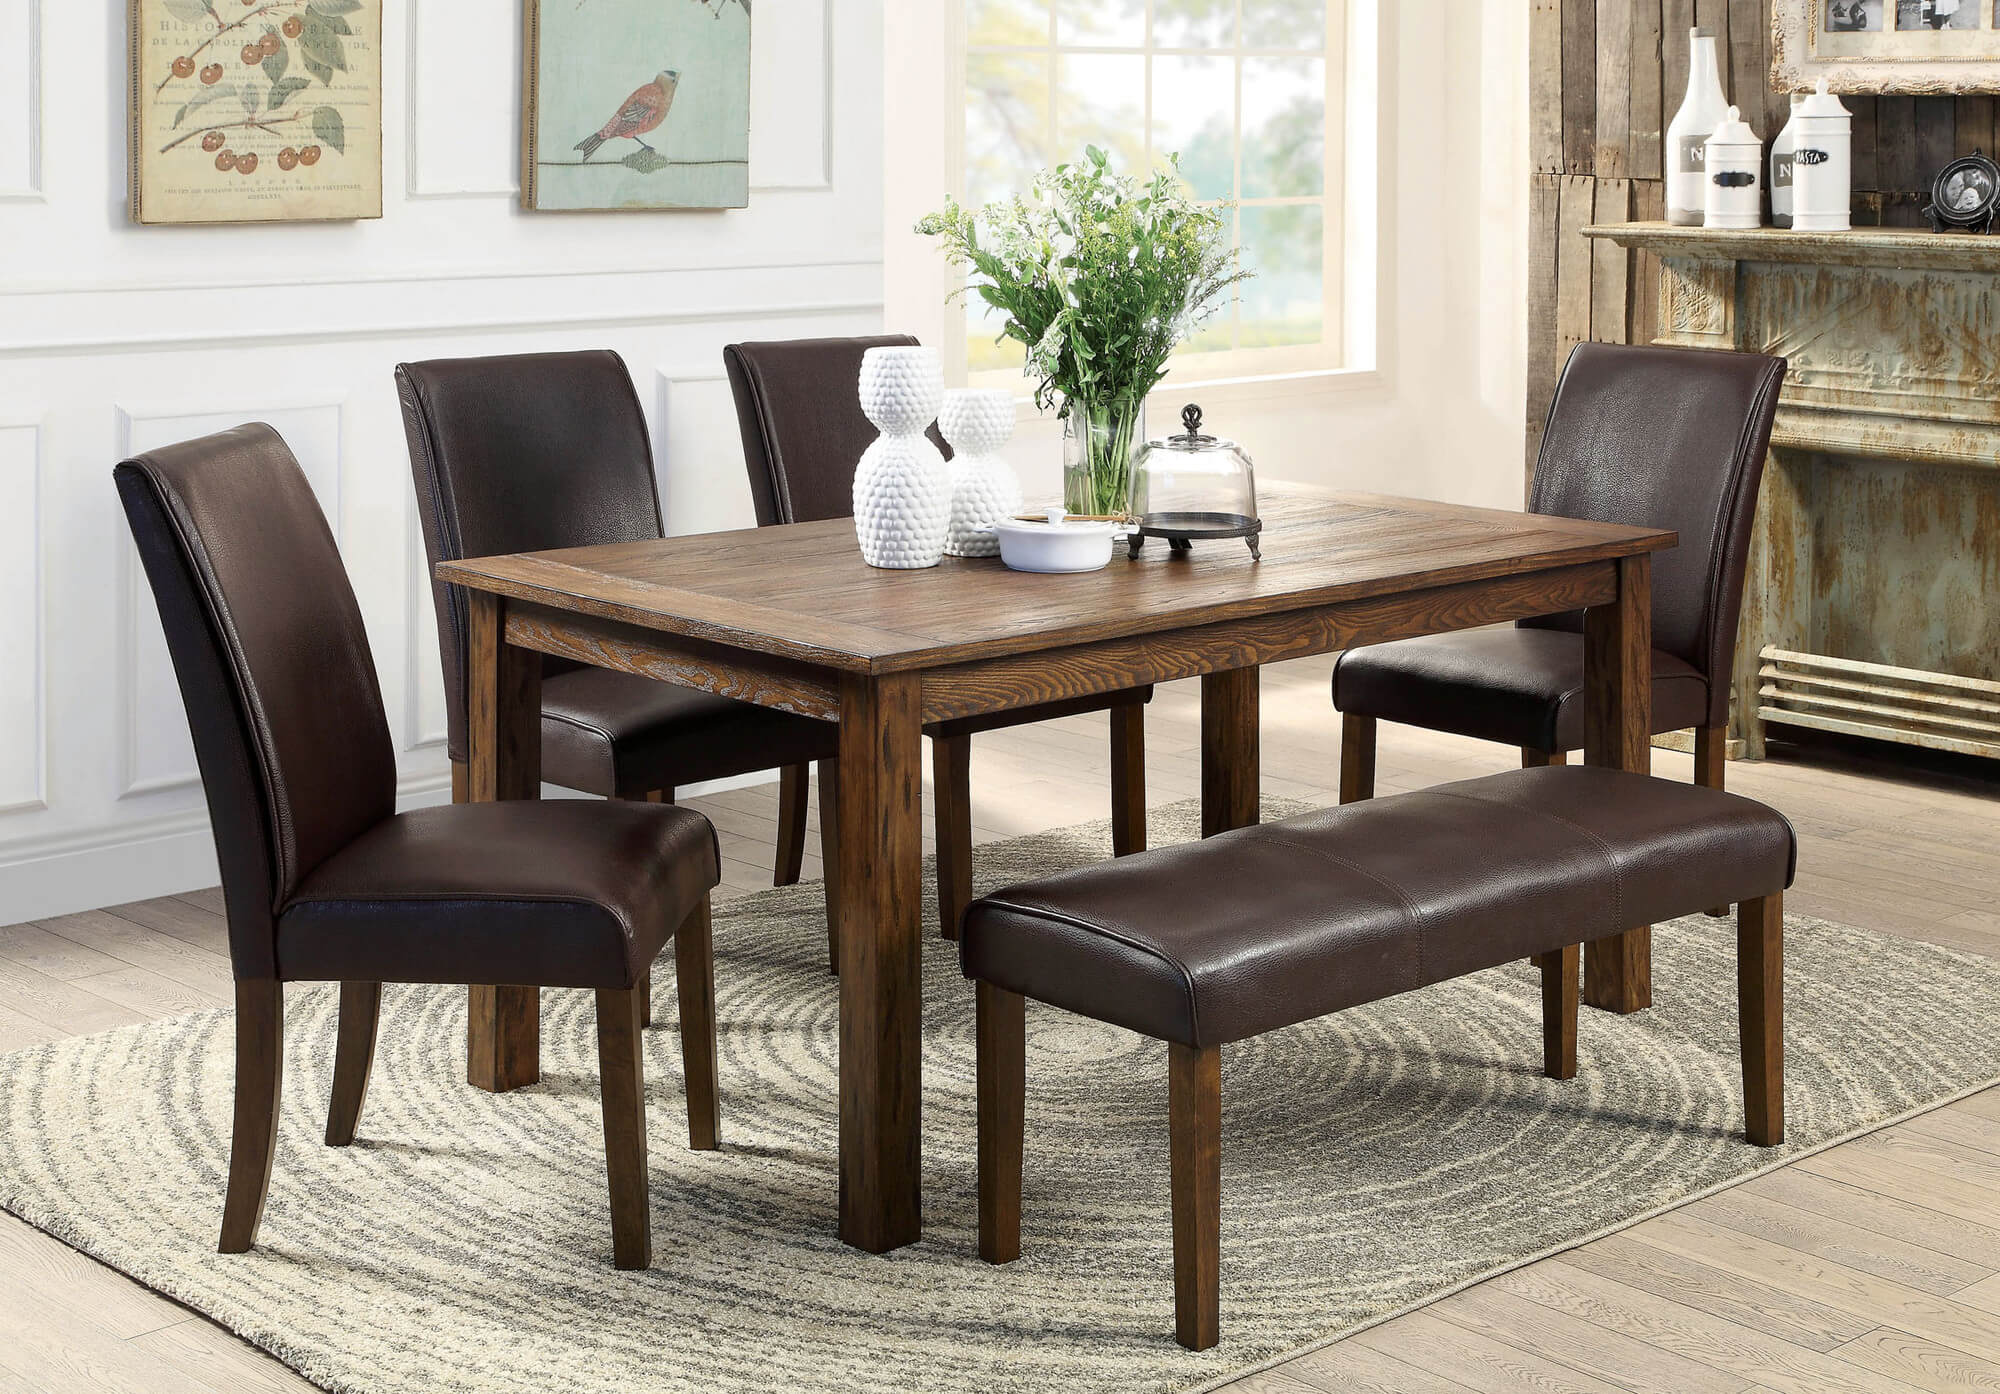 dining room sets bench seating small kitchen table Here s a rustic rectangle dining table with fully cushioned chairs and bench This look works